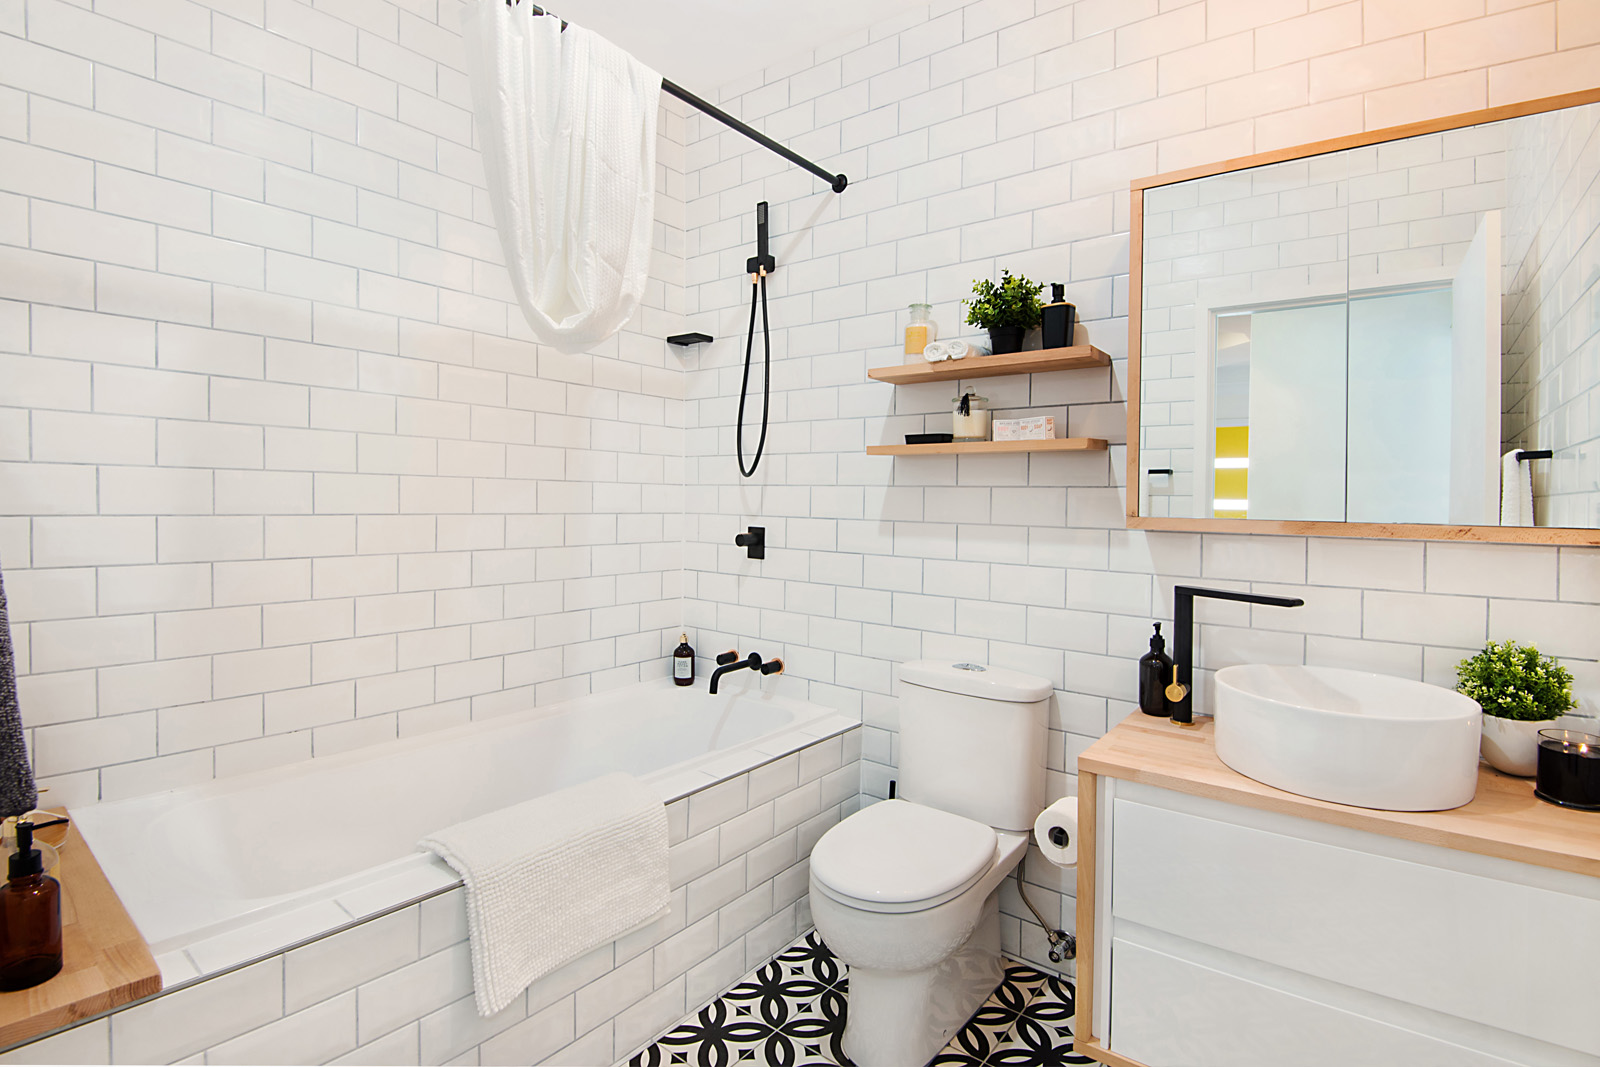 Bathroom Paints How To Renovate The Bathroom And Get A Designer Look On A Budget